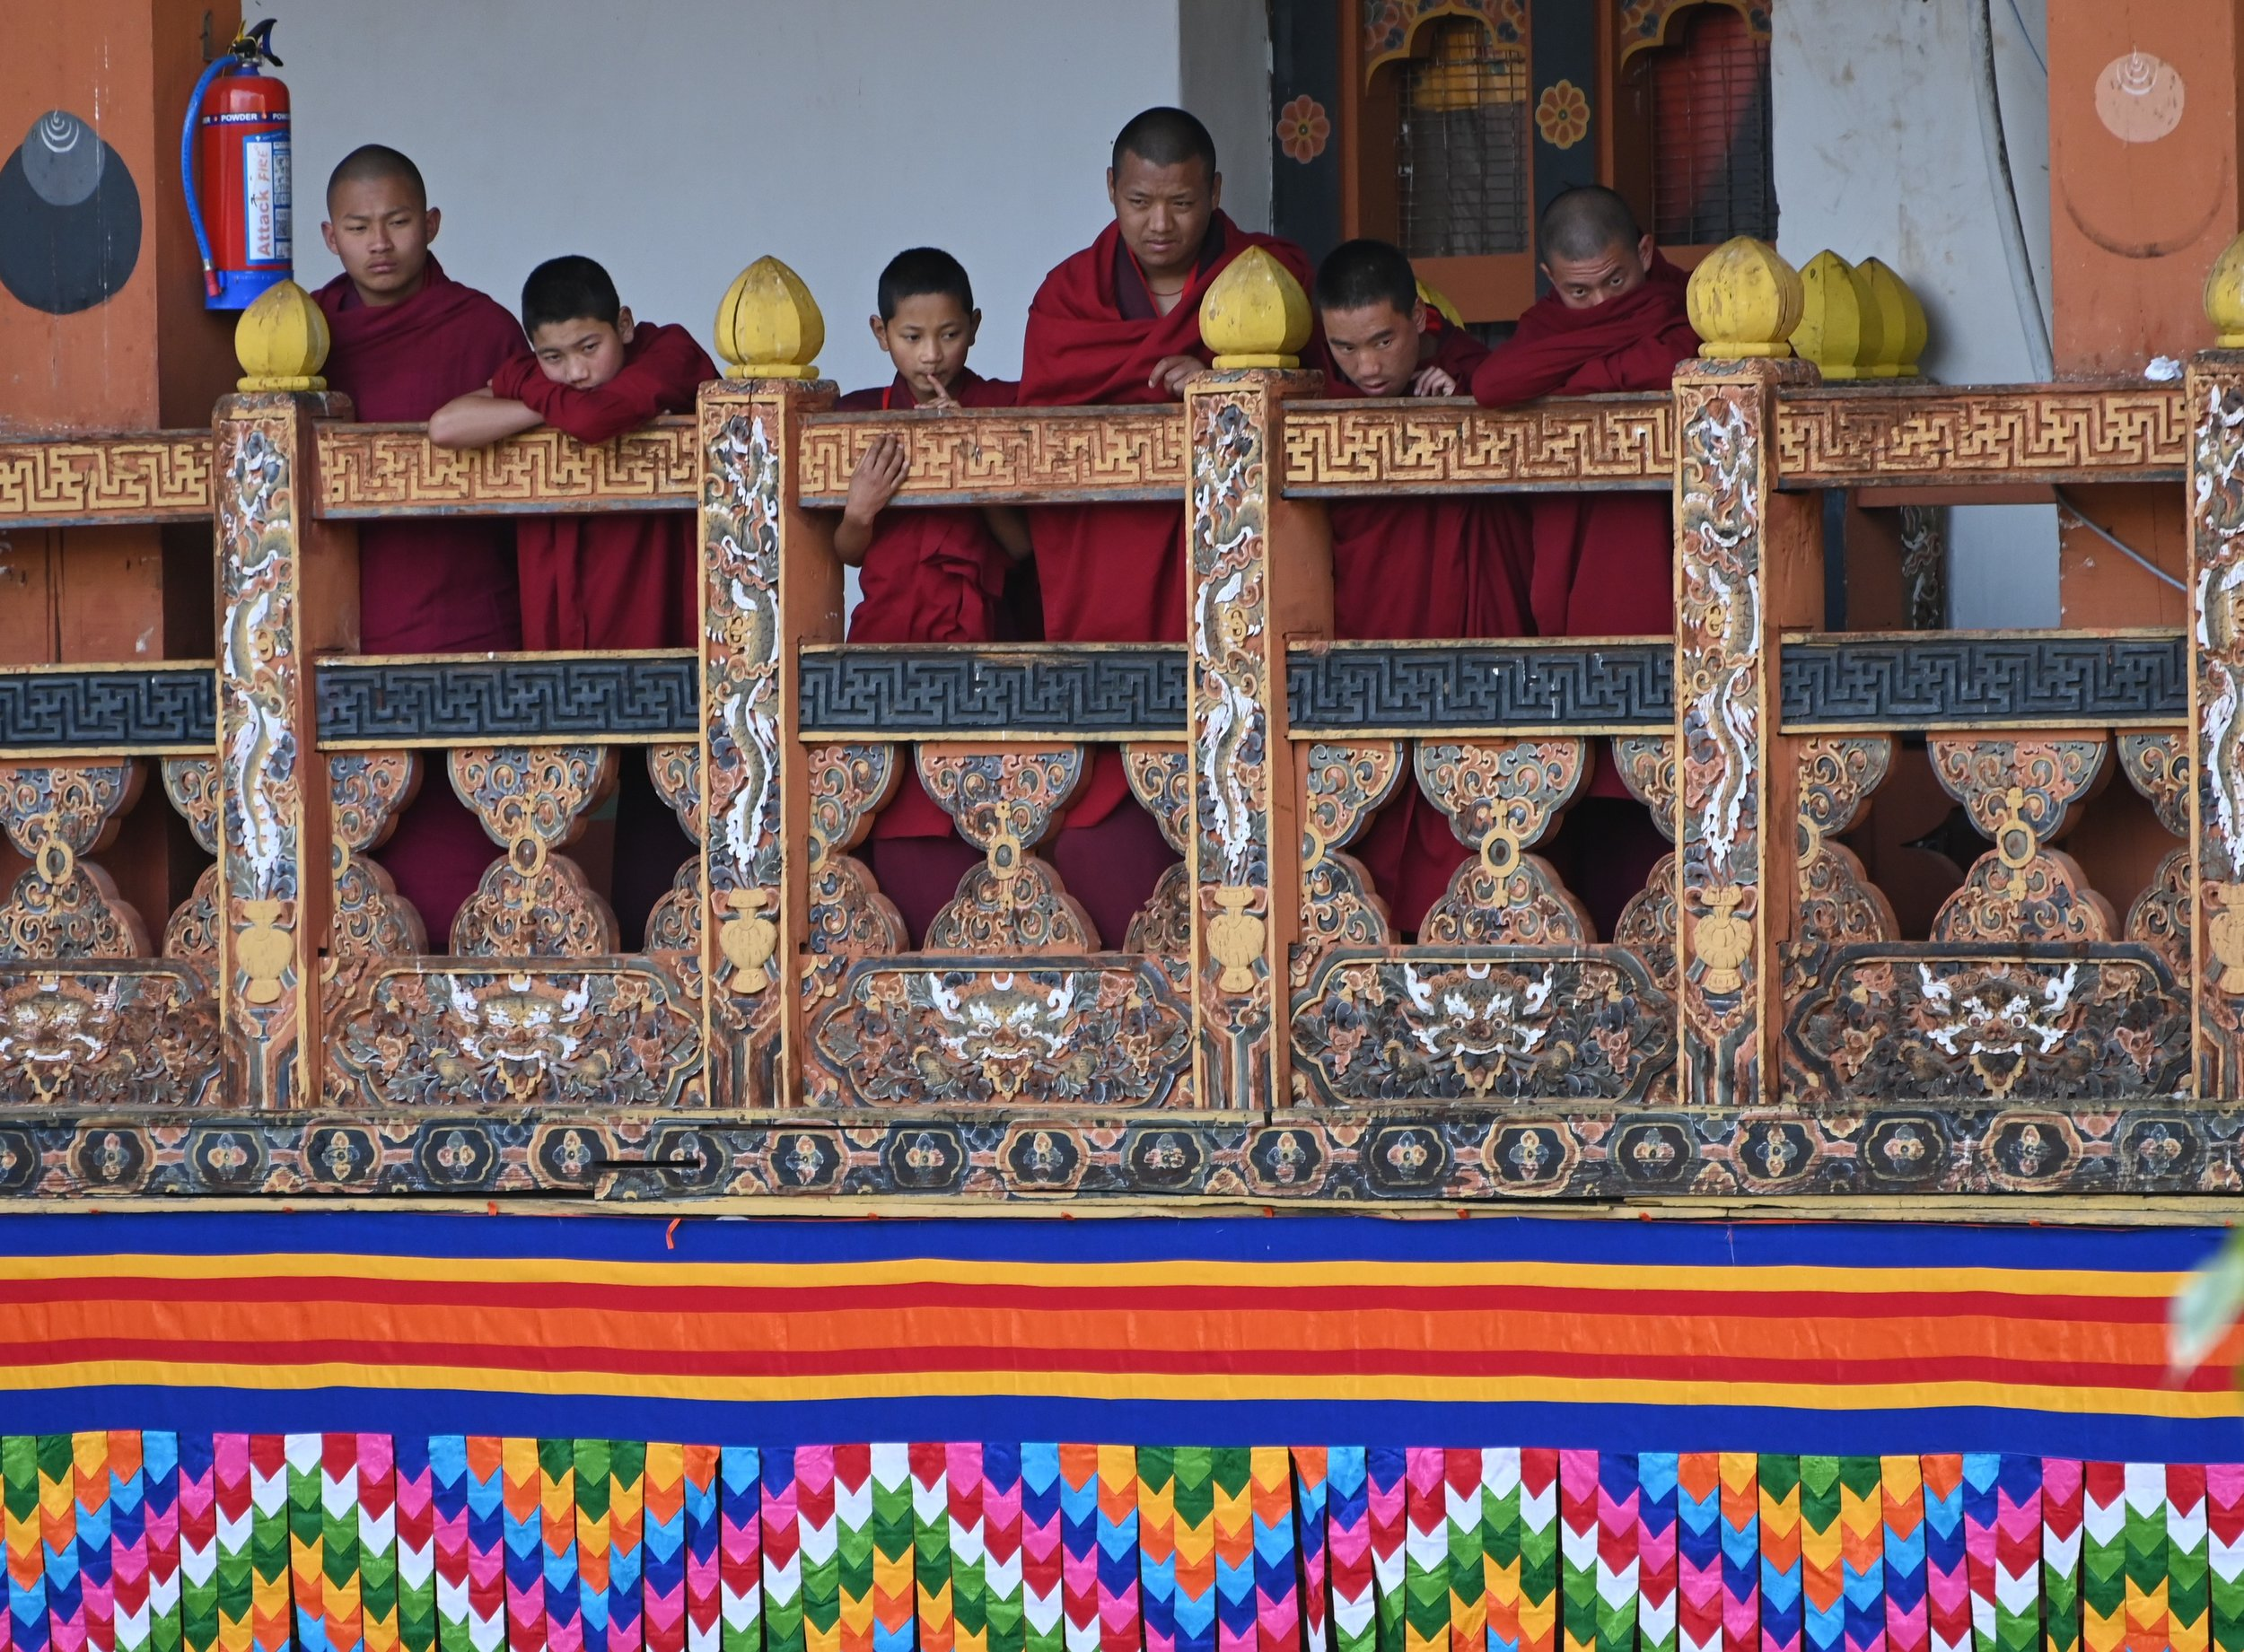 ADSC_0998monks at balcony - Copy.jpg